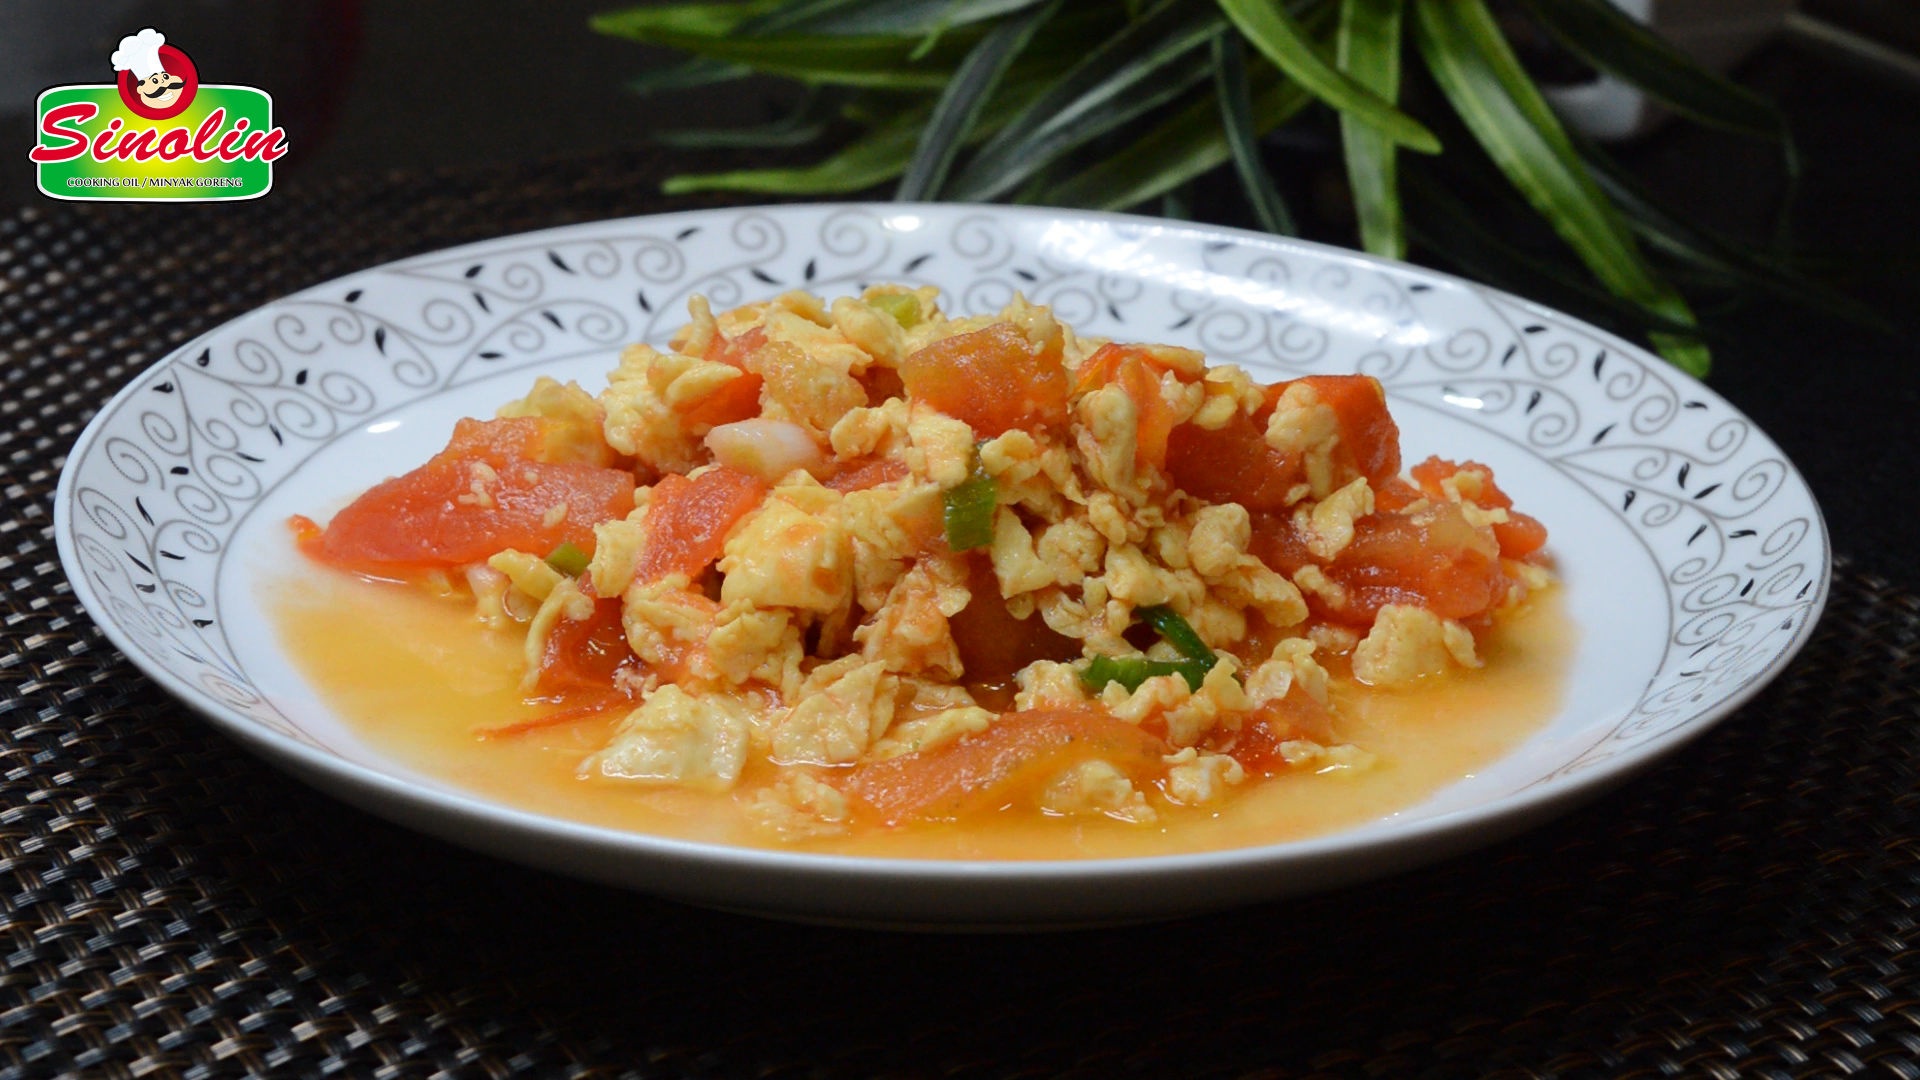 Chinese Tomato and Egg Stir Fry by Dapur Sinolin